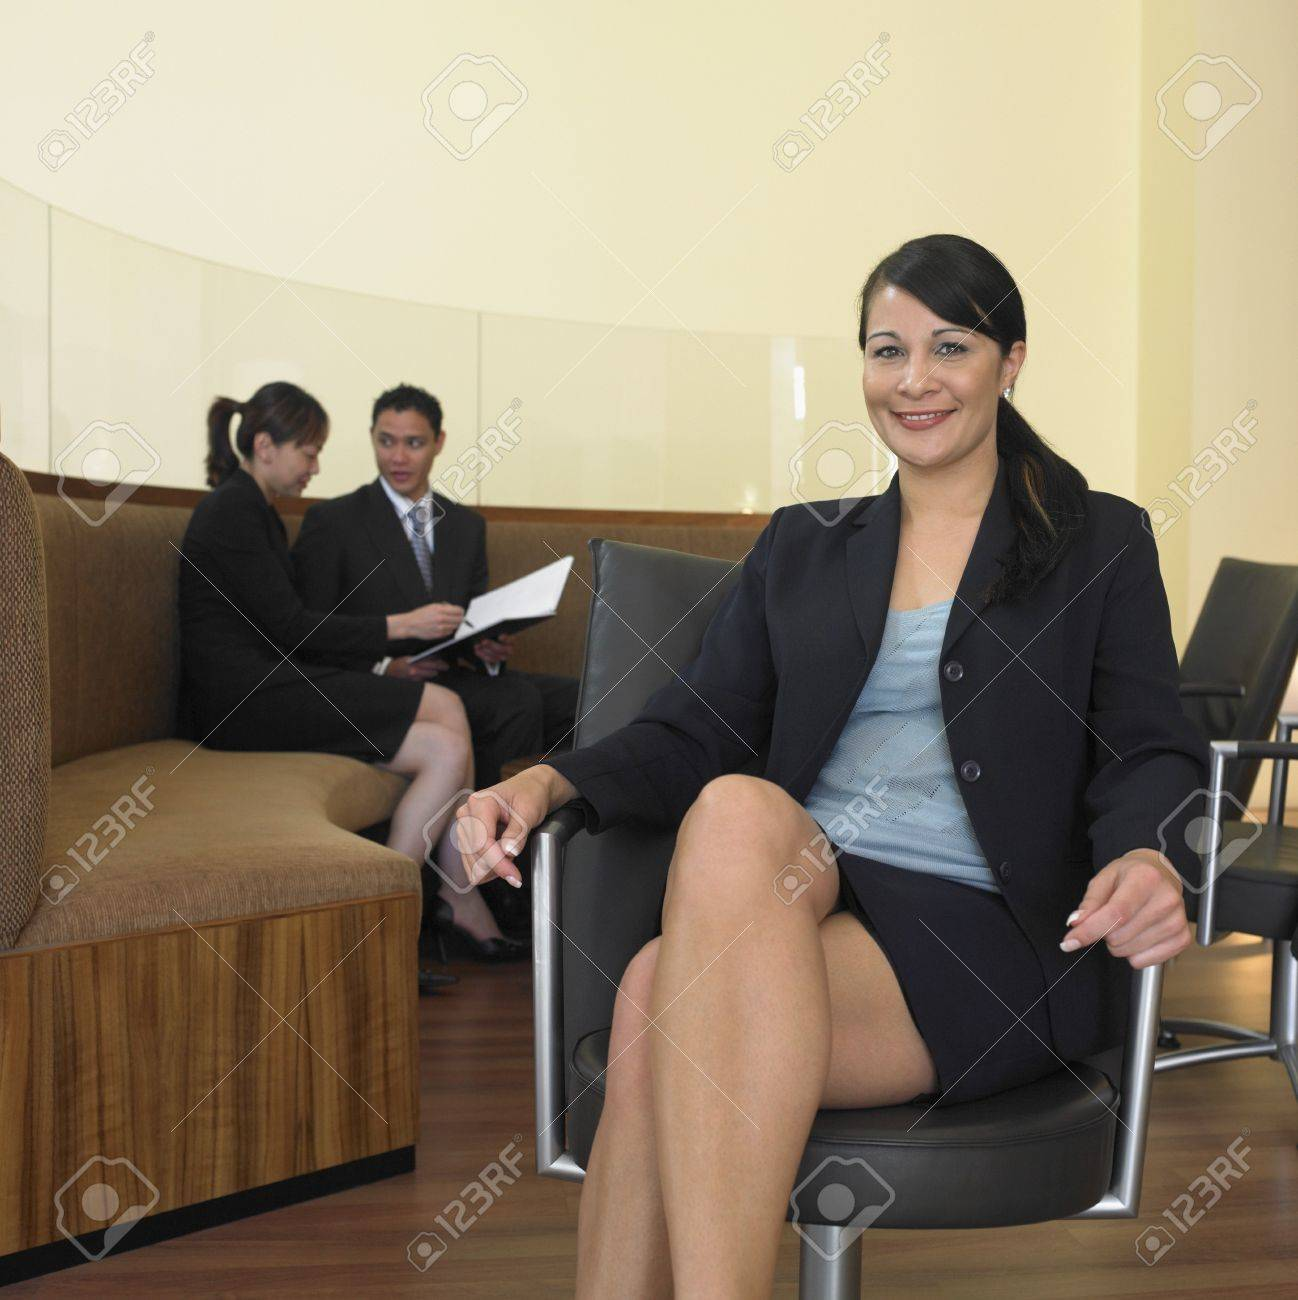 Businesswoman sitting with co-workers in background Stock Photo - 16090393